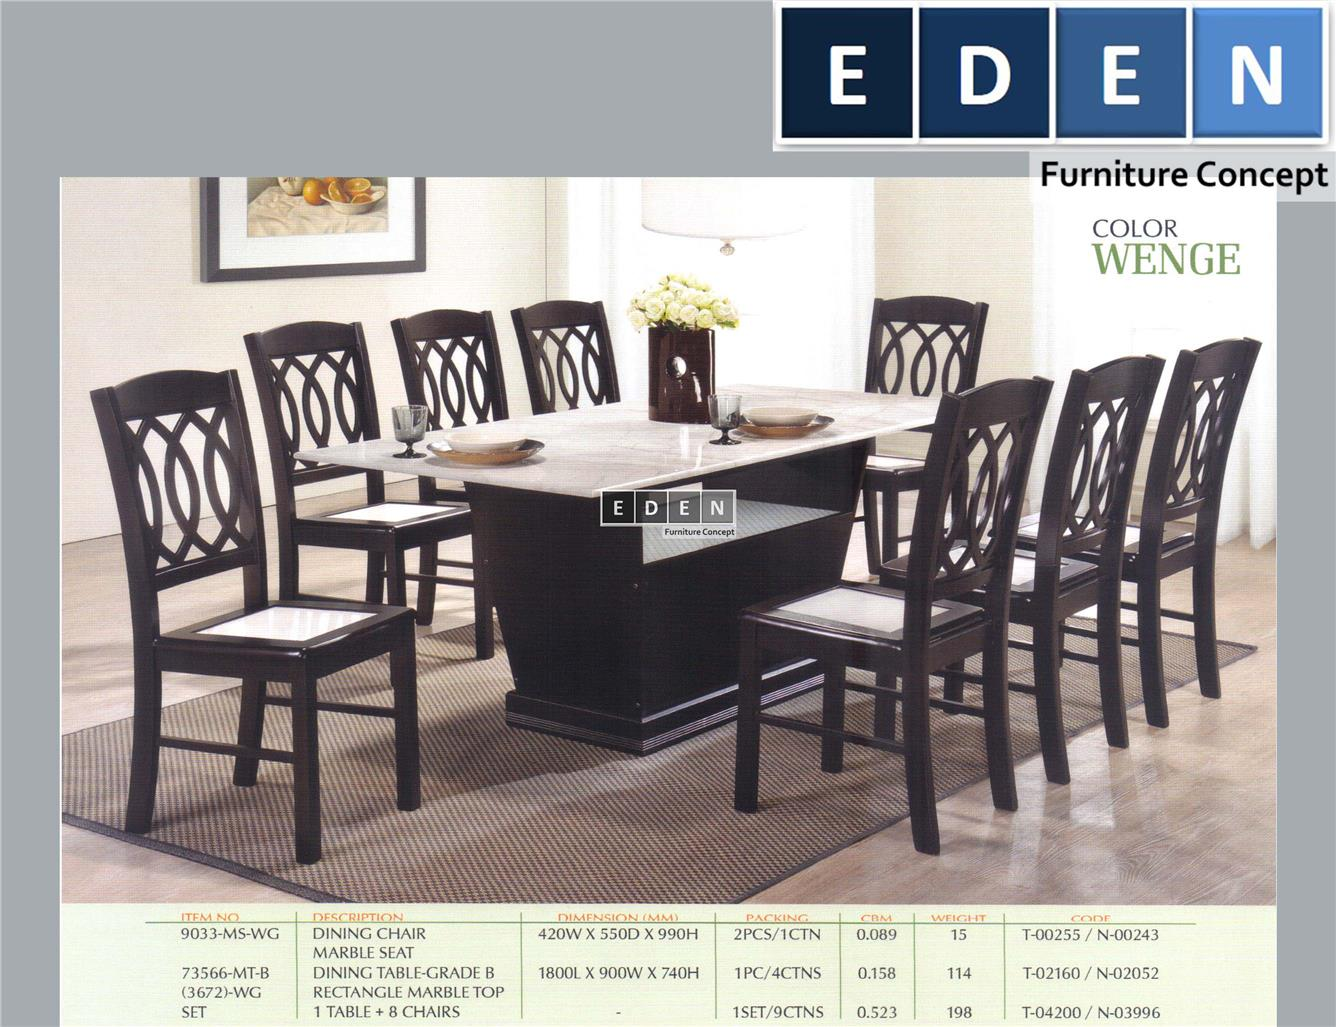 FURNITURE MALAYSIA KITCHEN DINING end 632017 1115 AM : furniture malaysia kitchen dining table meja makan 73566s kykstore 1506 04 KYKstore4 from www.lelong.com.my size 1336 x 1027 jpeg 192kB